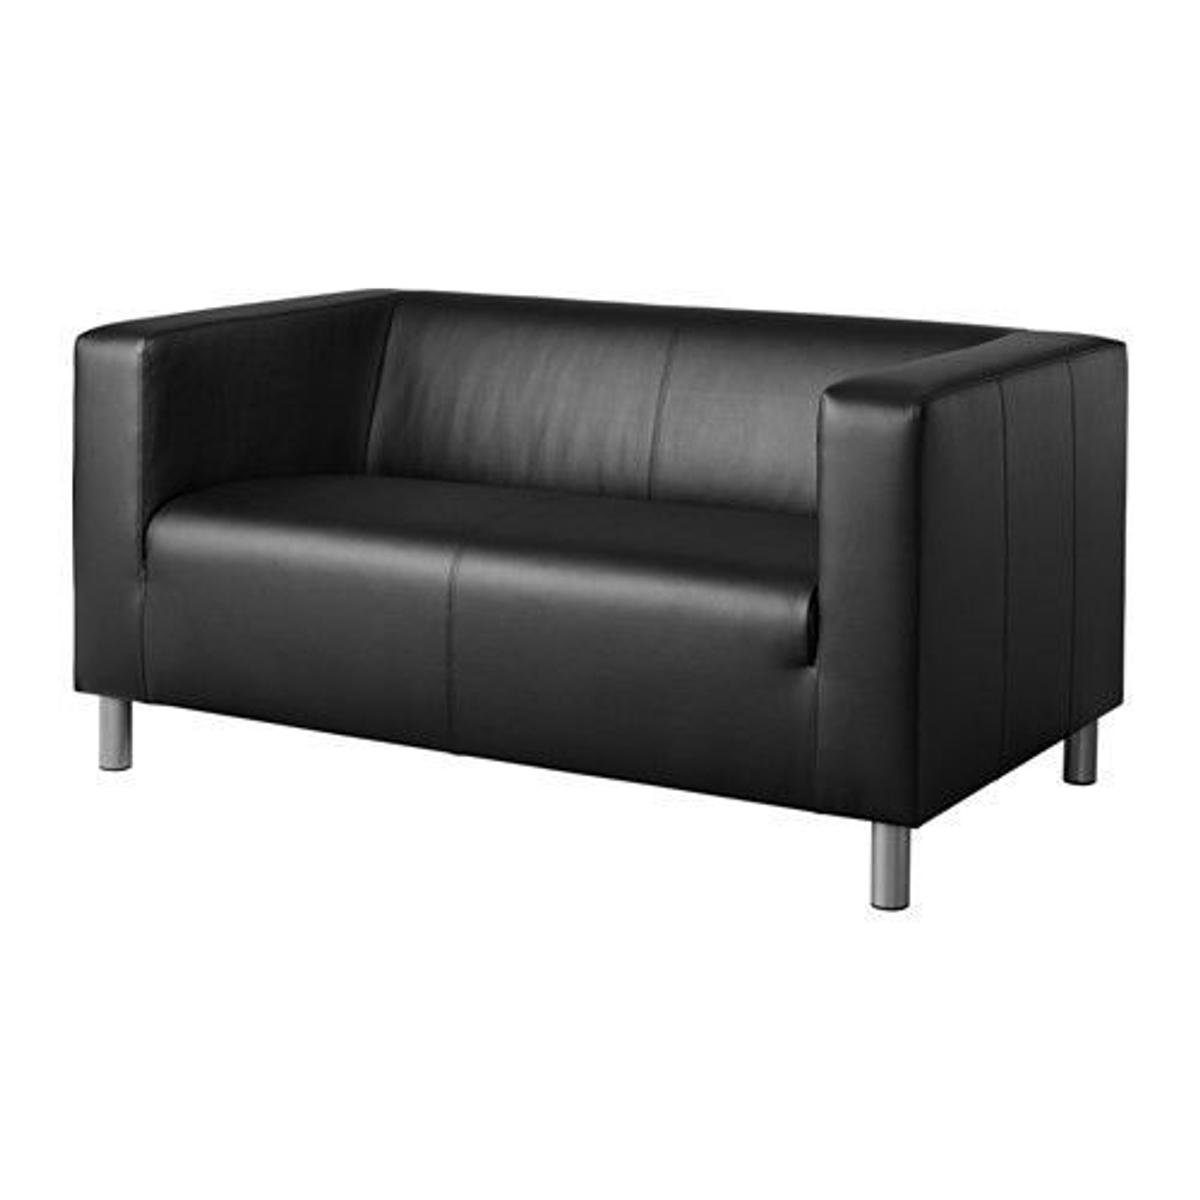 - Ikea Klippan Black Leather Sofa In AL2 Albans For £90.00 For Sale